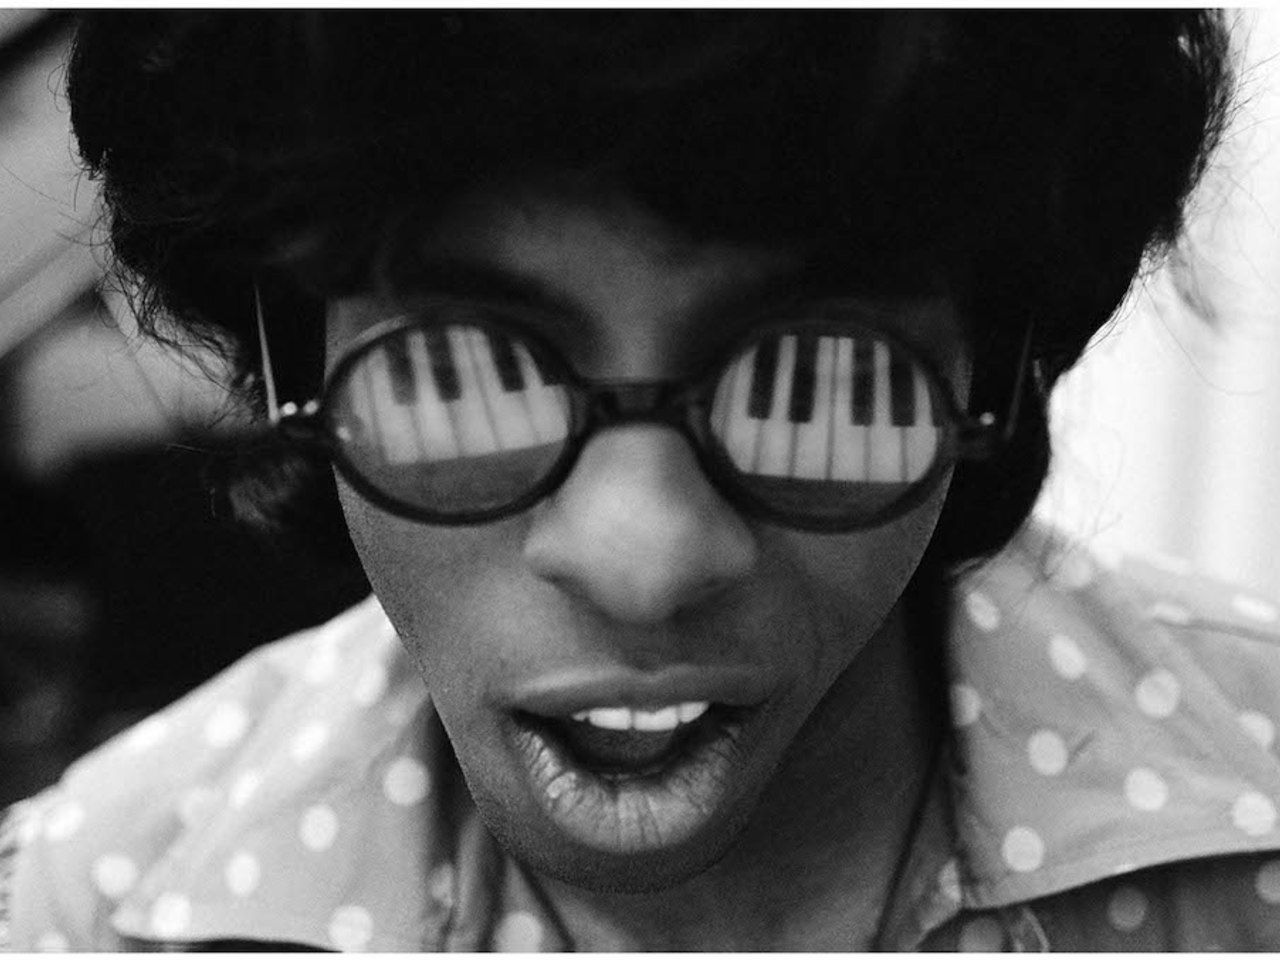 Sly Stone,musician, songwriter, and producer of the 1960s/1970s.